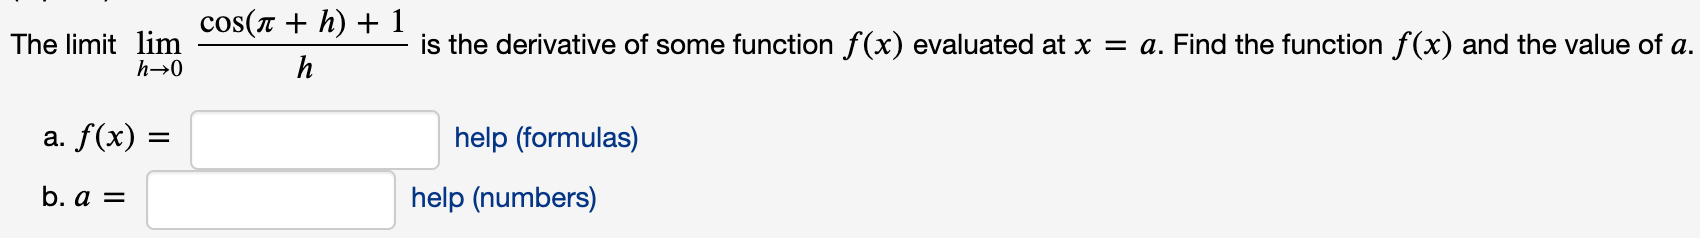 cos(r + h) + 1 The limit lim h→0 is the derivative of some function f(x) evaluated at x = a. Find the function f(x) and the value of a. h a. f(x) = help (formulas) %D b. a = help (numbers)